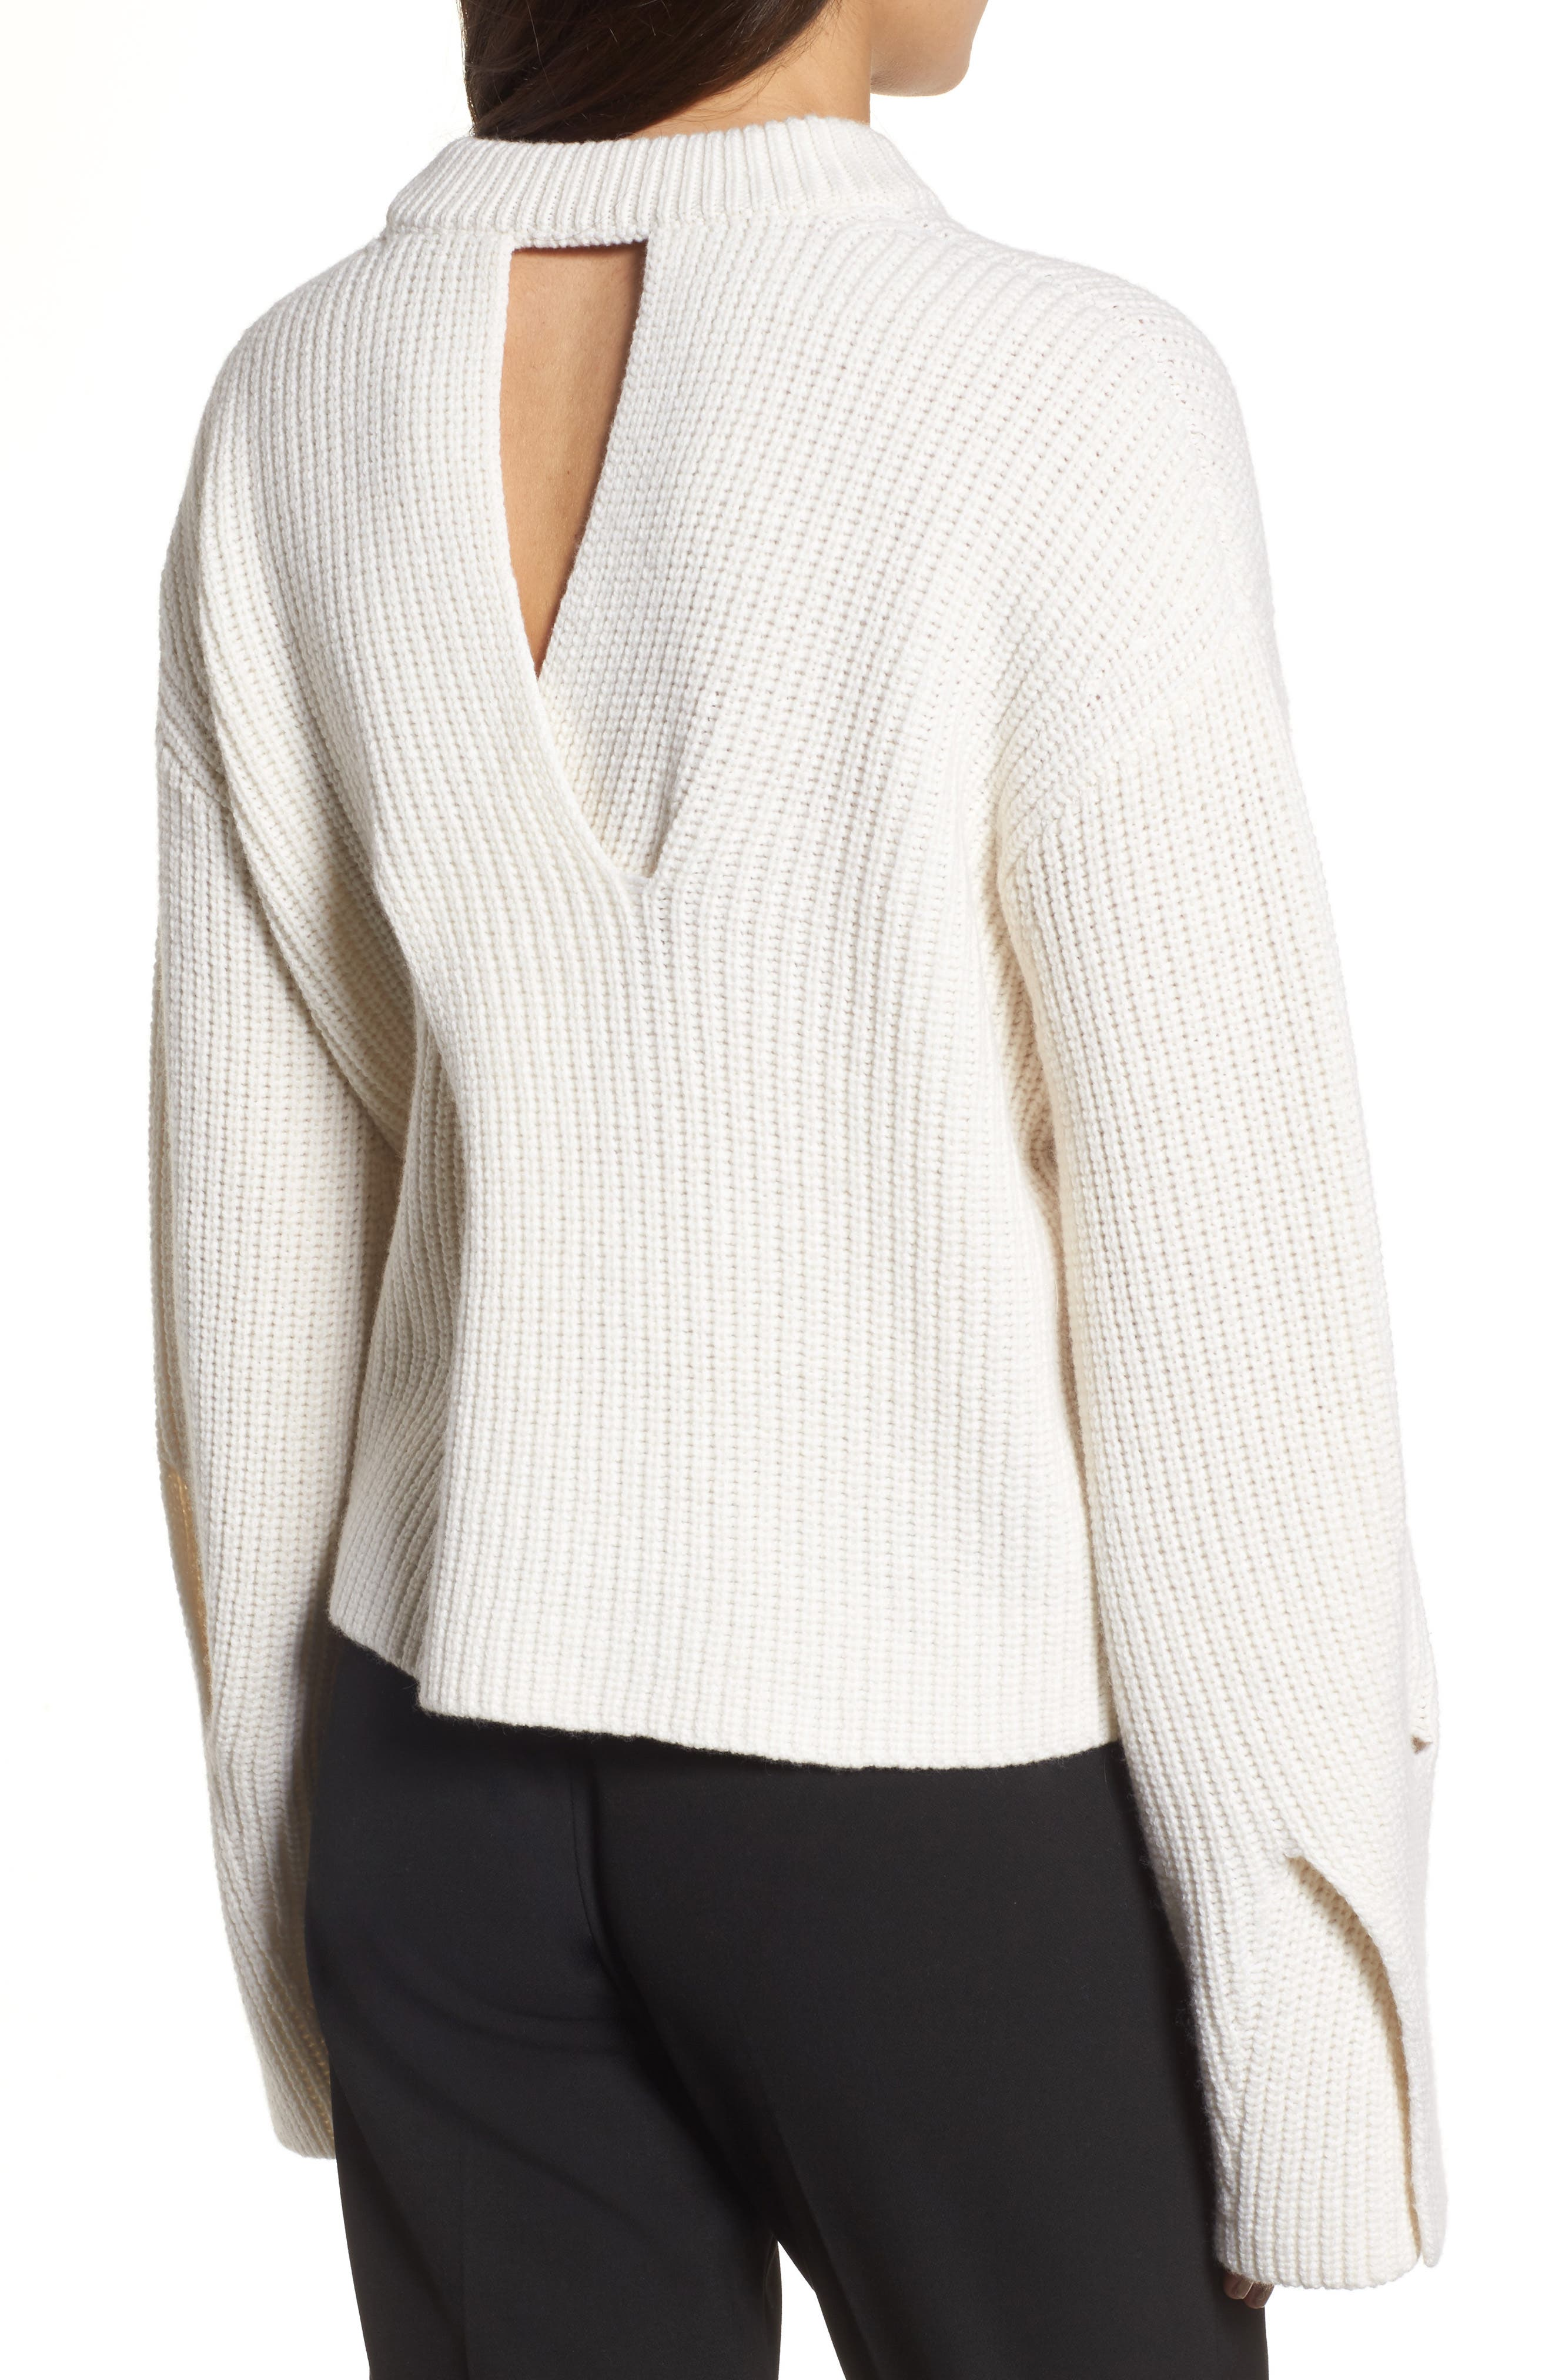 Fihra Wool Blend Sweater,                             Alternate thumbnail 2, color,                             252